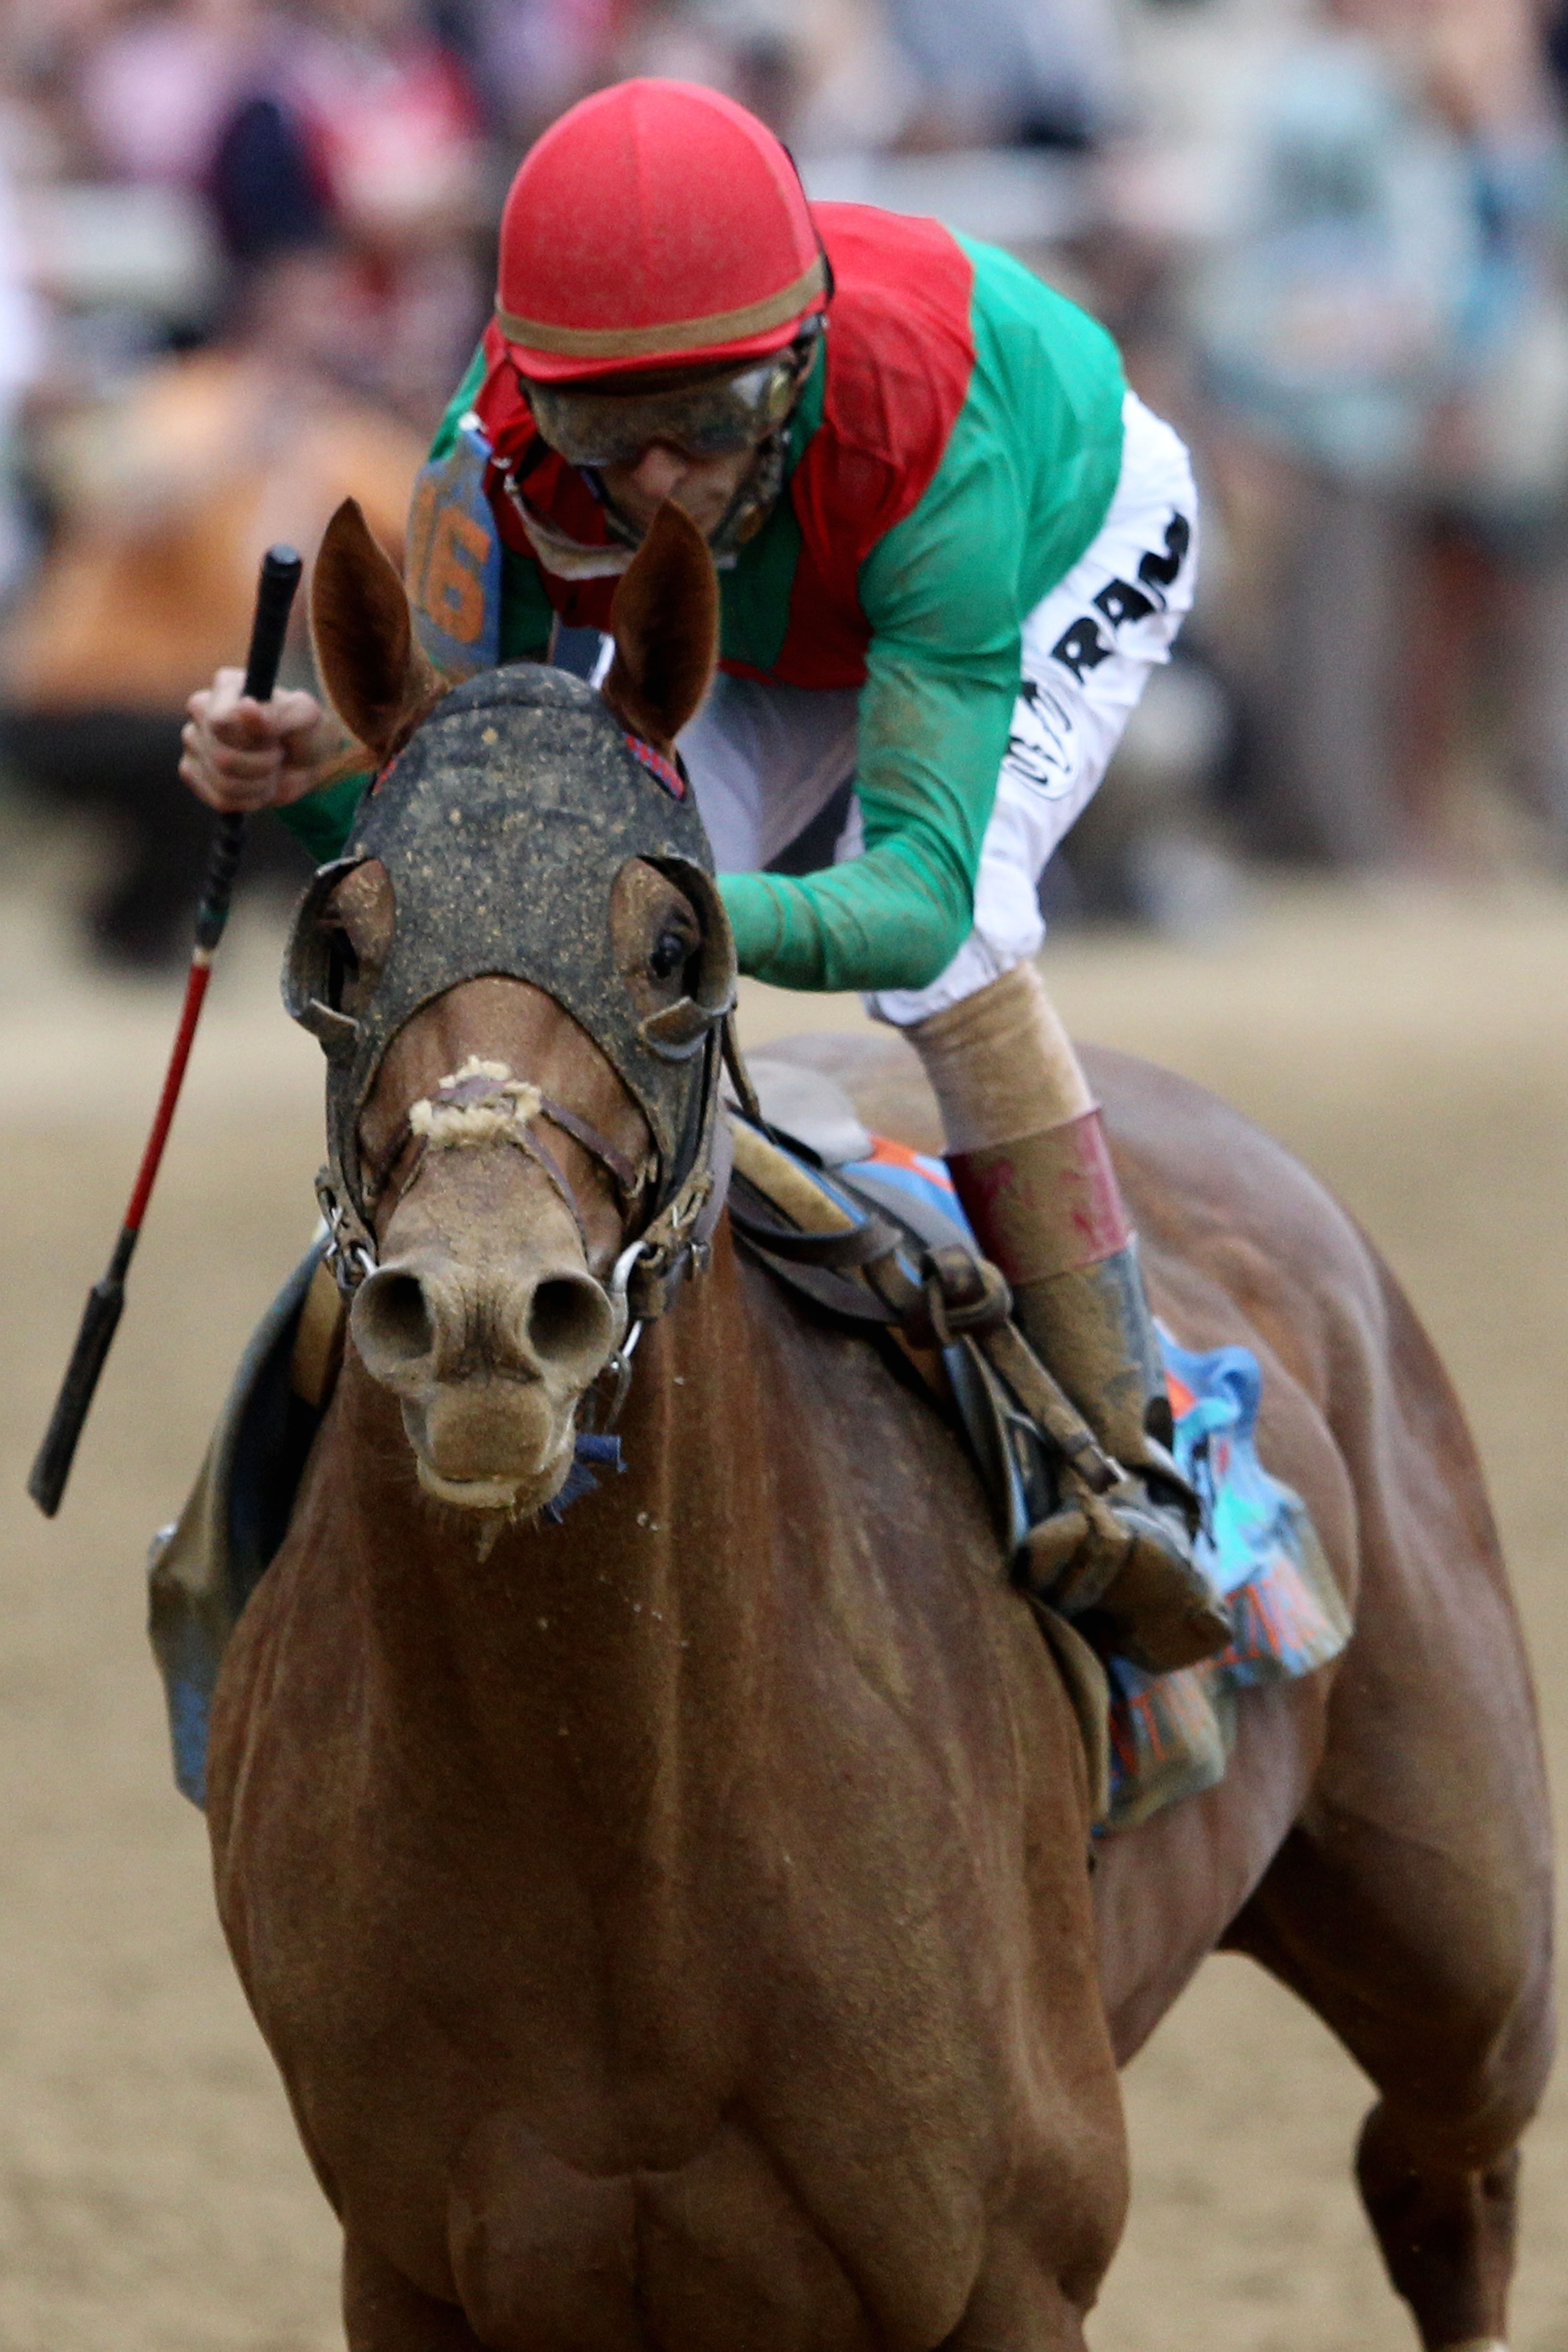 LOUISVILLE, KY - MAY 07:  Jockey John Velazquez, riding Animal Kingdom #16 crosses the finish line on way to winning the 137th Kentucky Derby at Churchill Downs on May 7, 2011 in Louisville, Kentucky.  (Photo by Matthew Stockman/Getty Images)